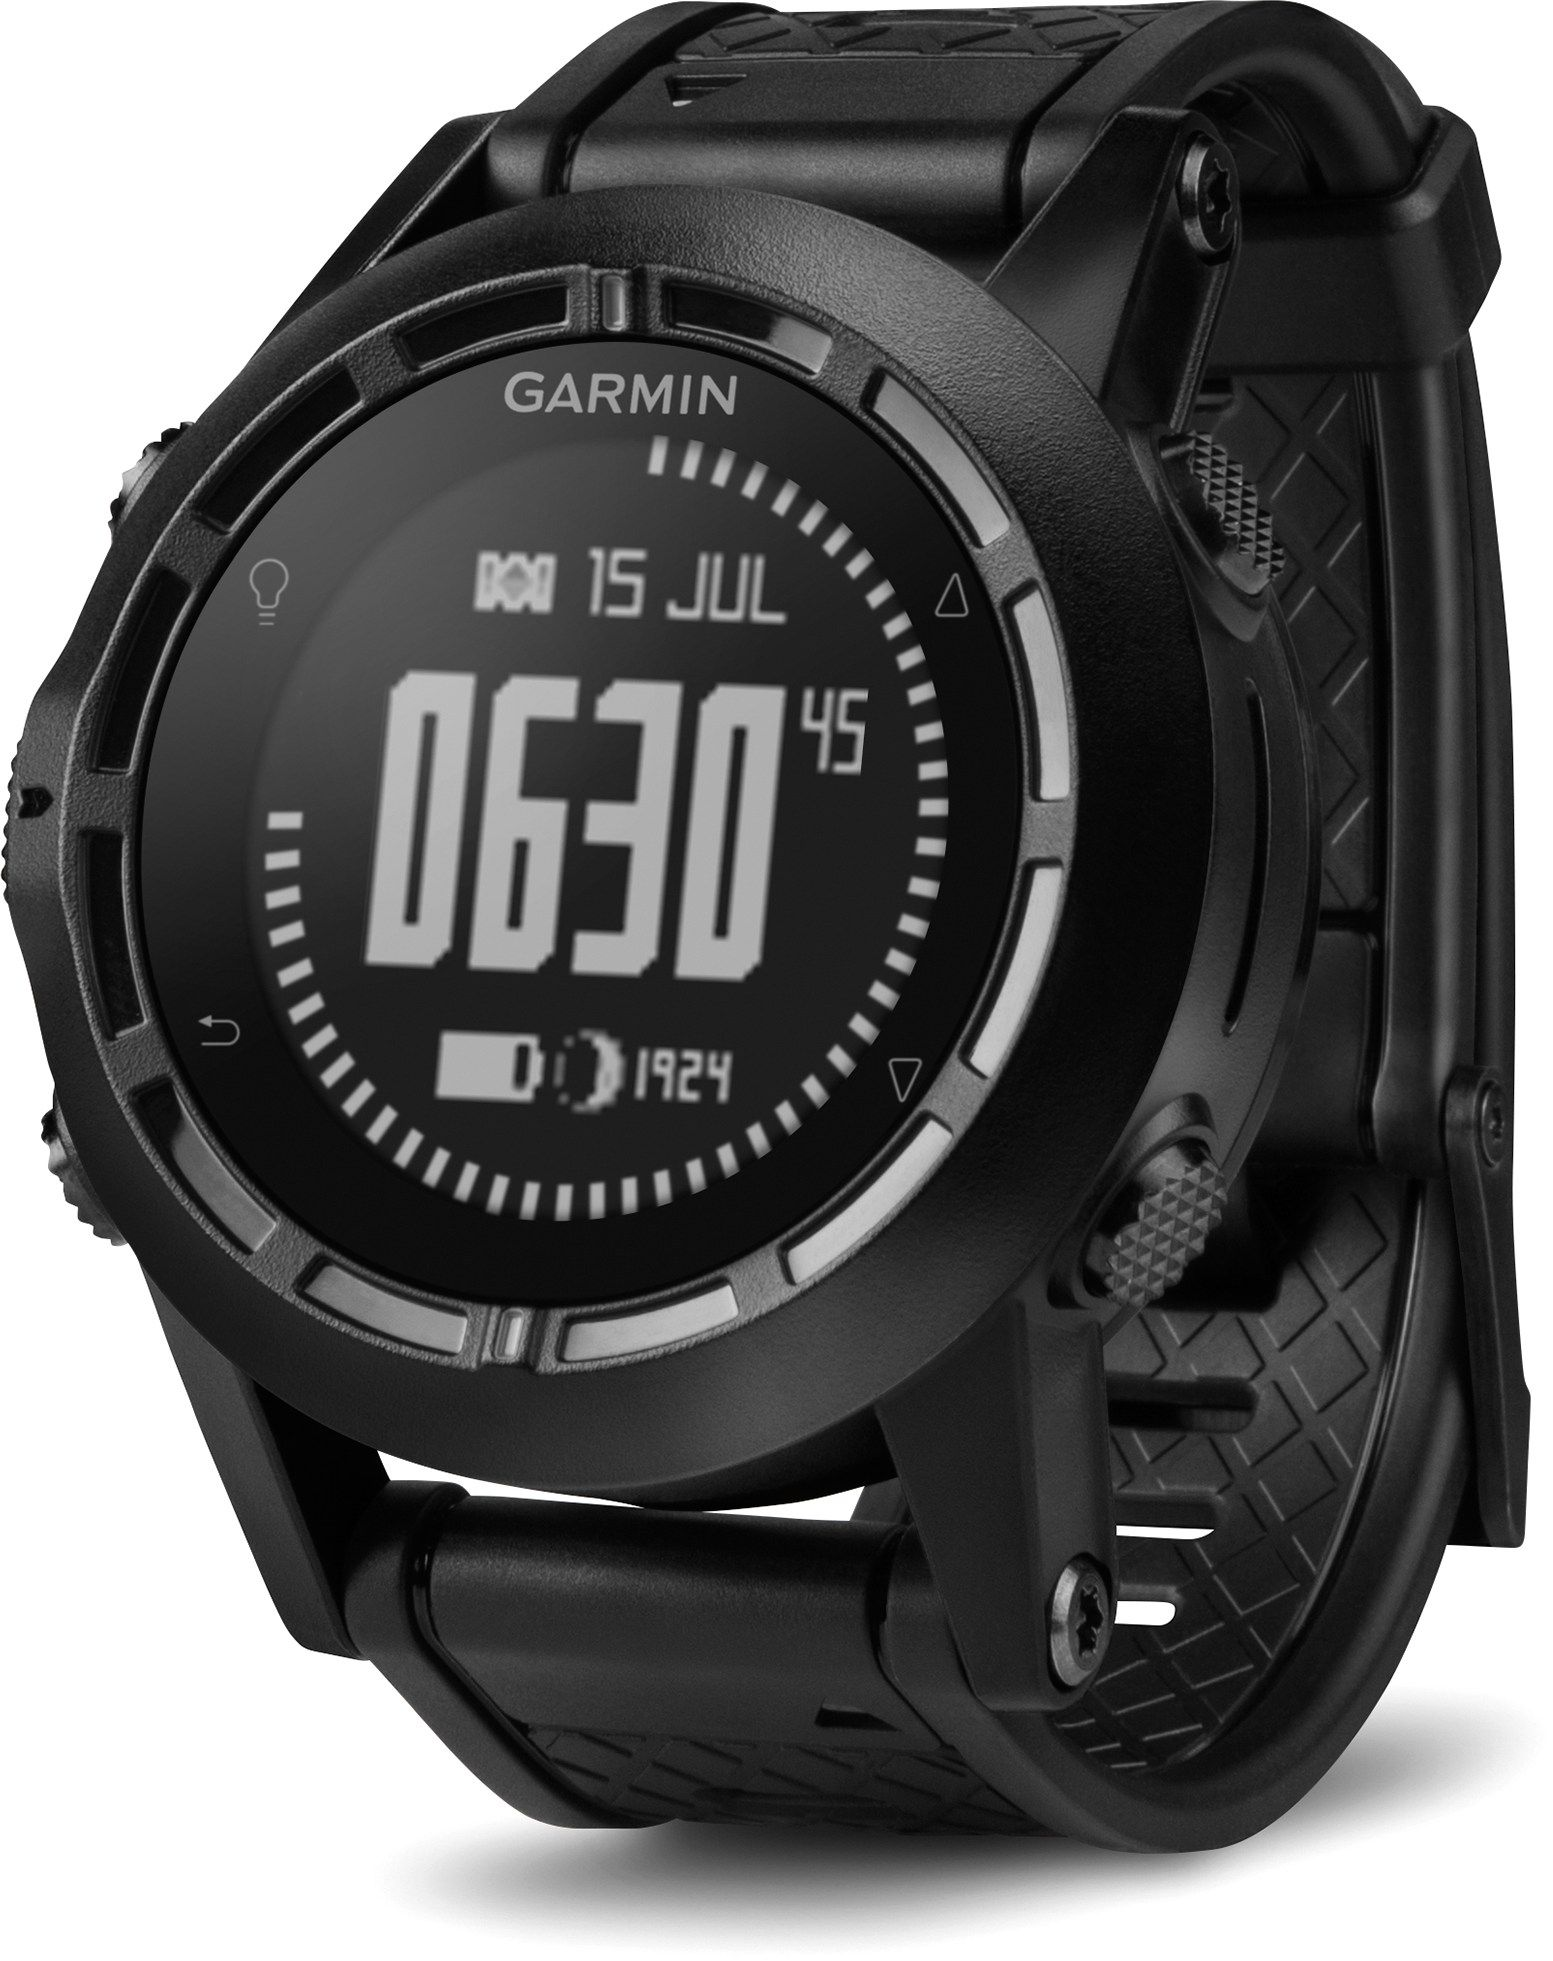 Inspired by special-ops forces makes this a watch like no other. fcfba9f393